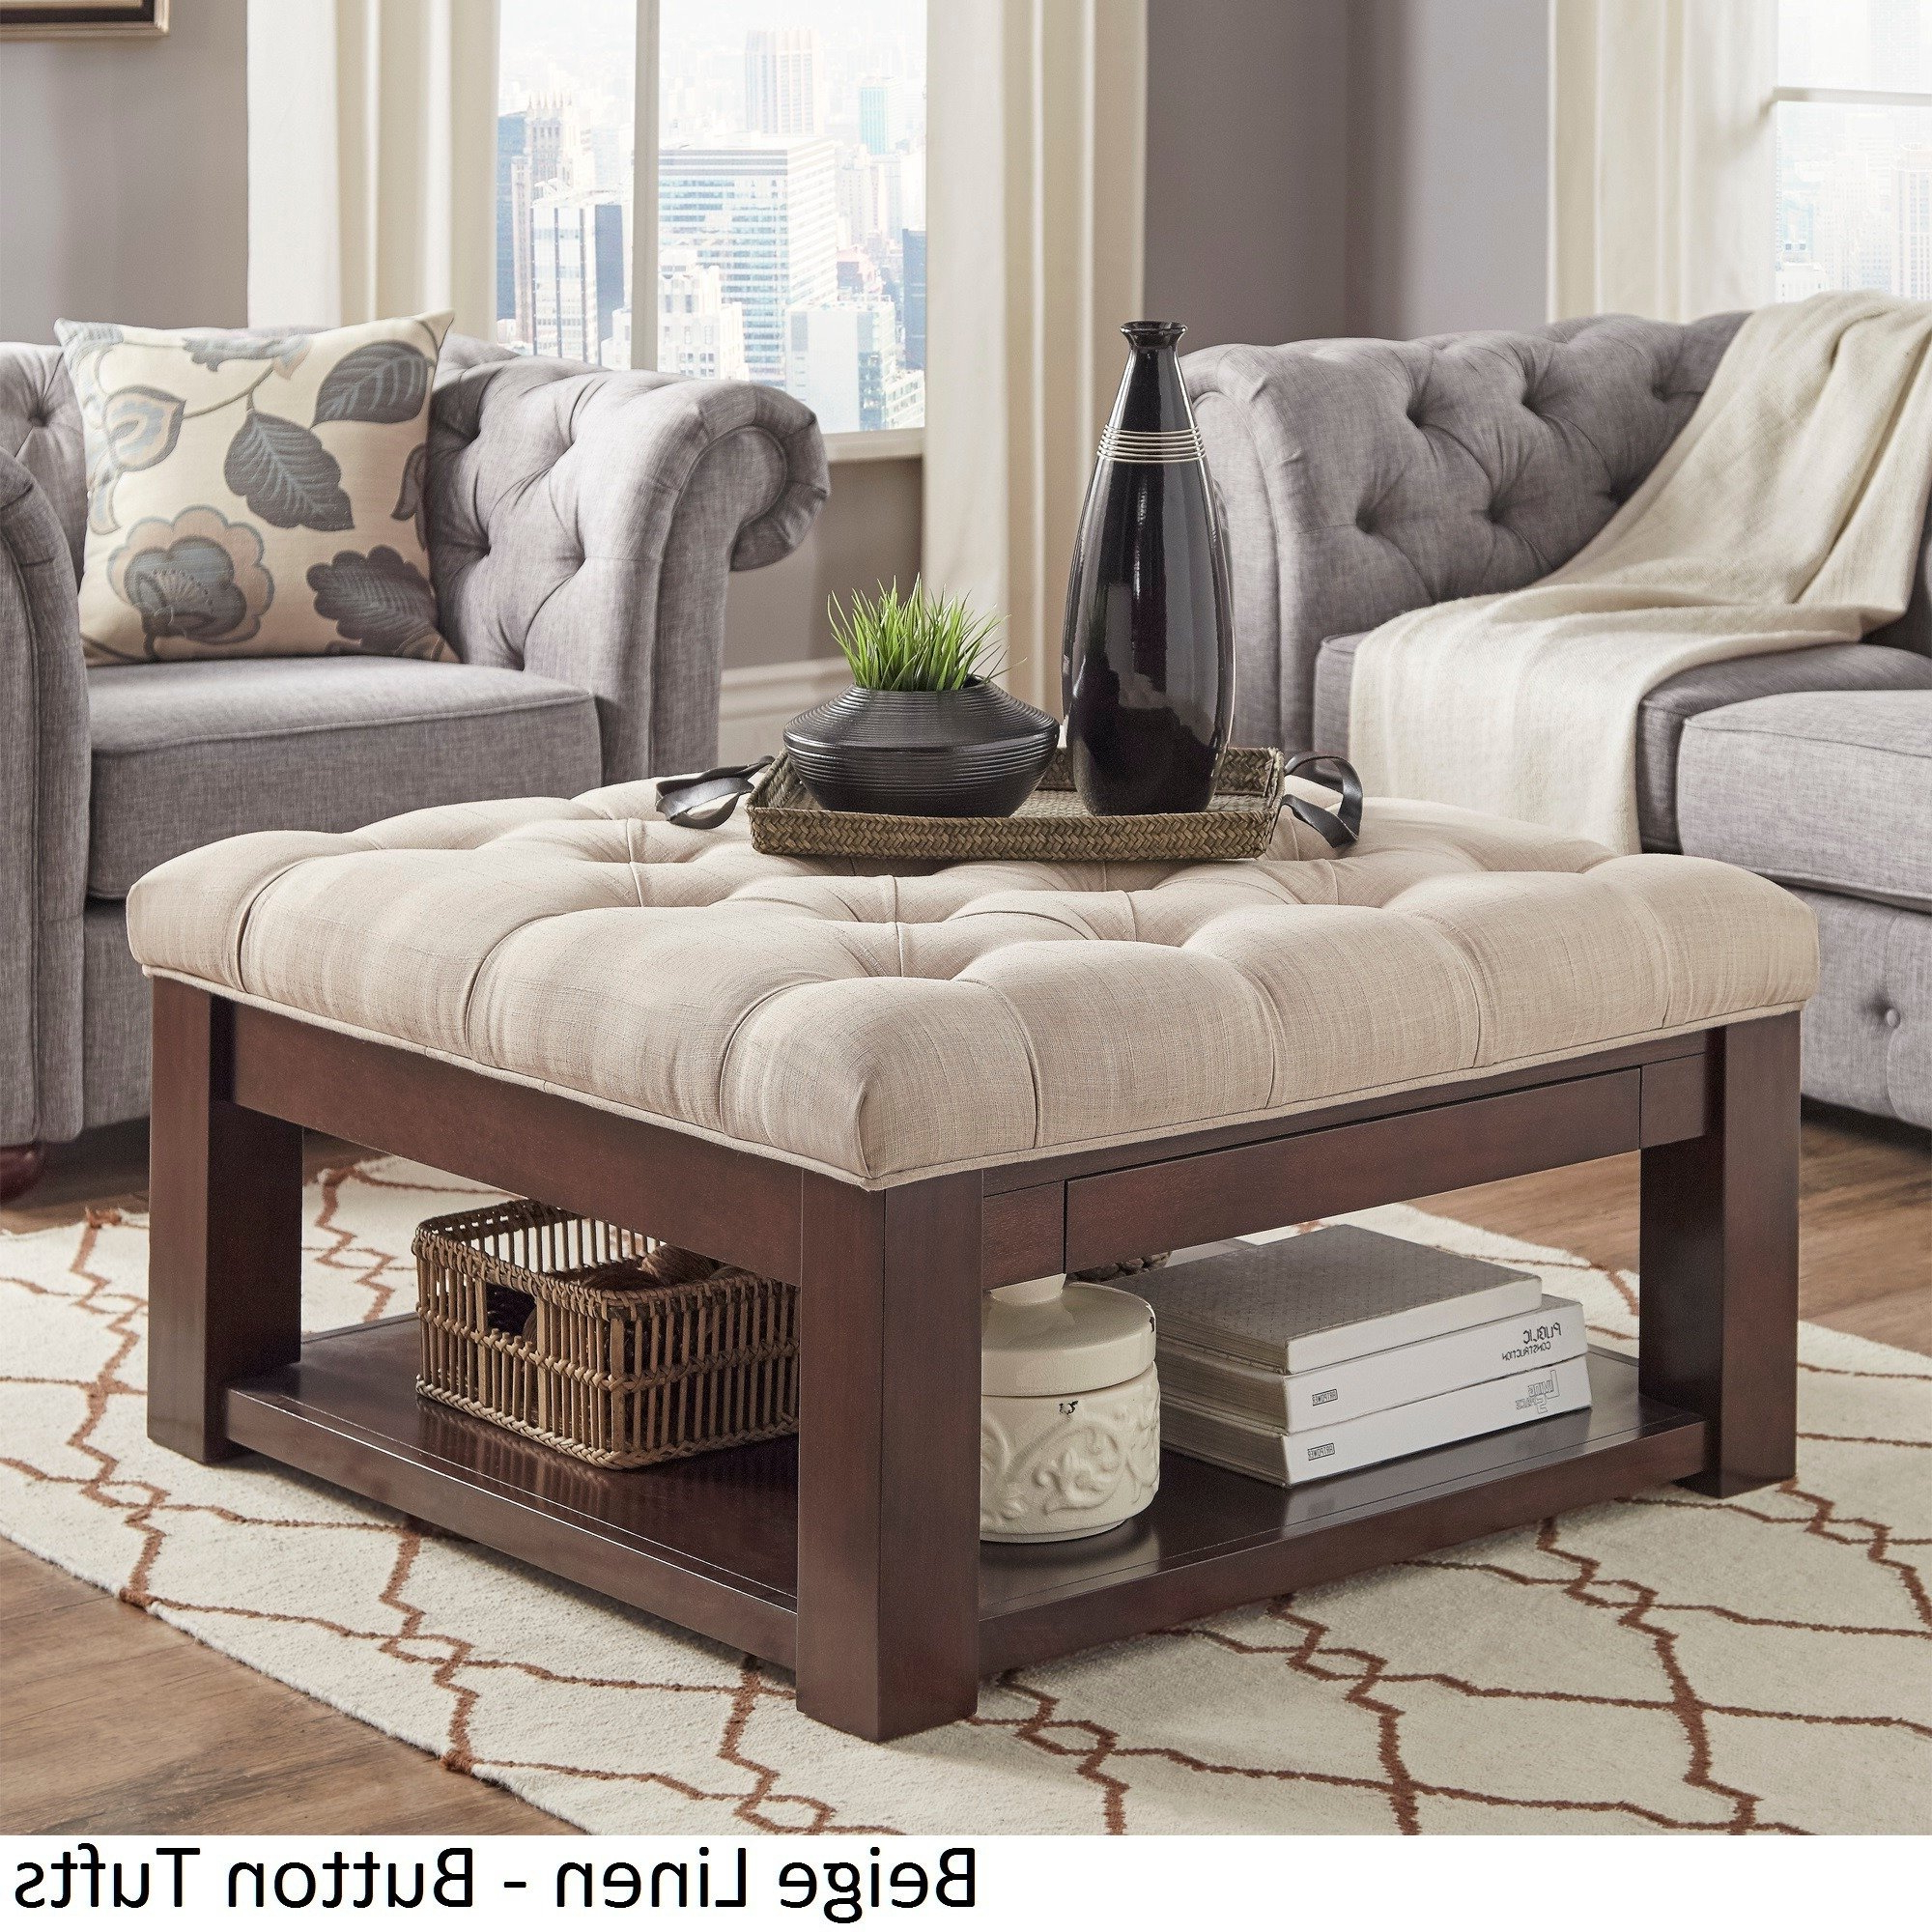 Ottoman Coffee Table – Andrewab.co (View 11 of 20)